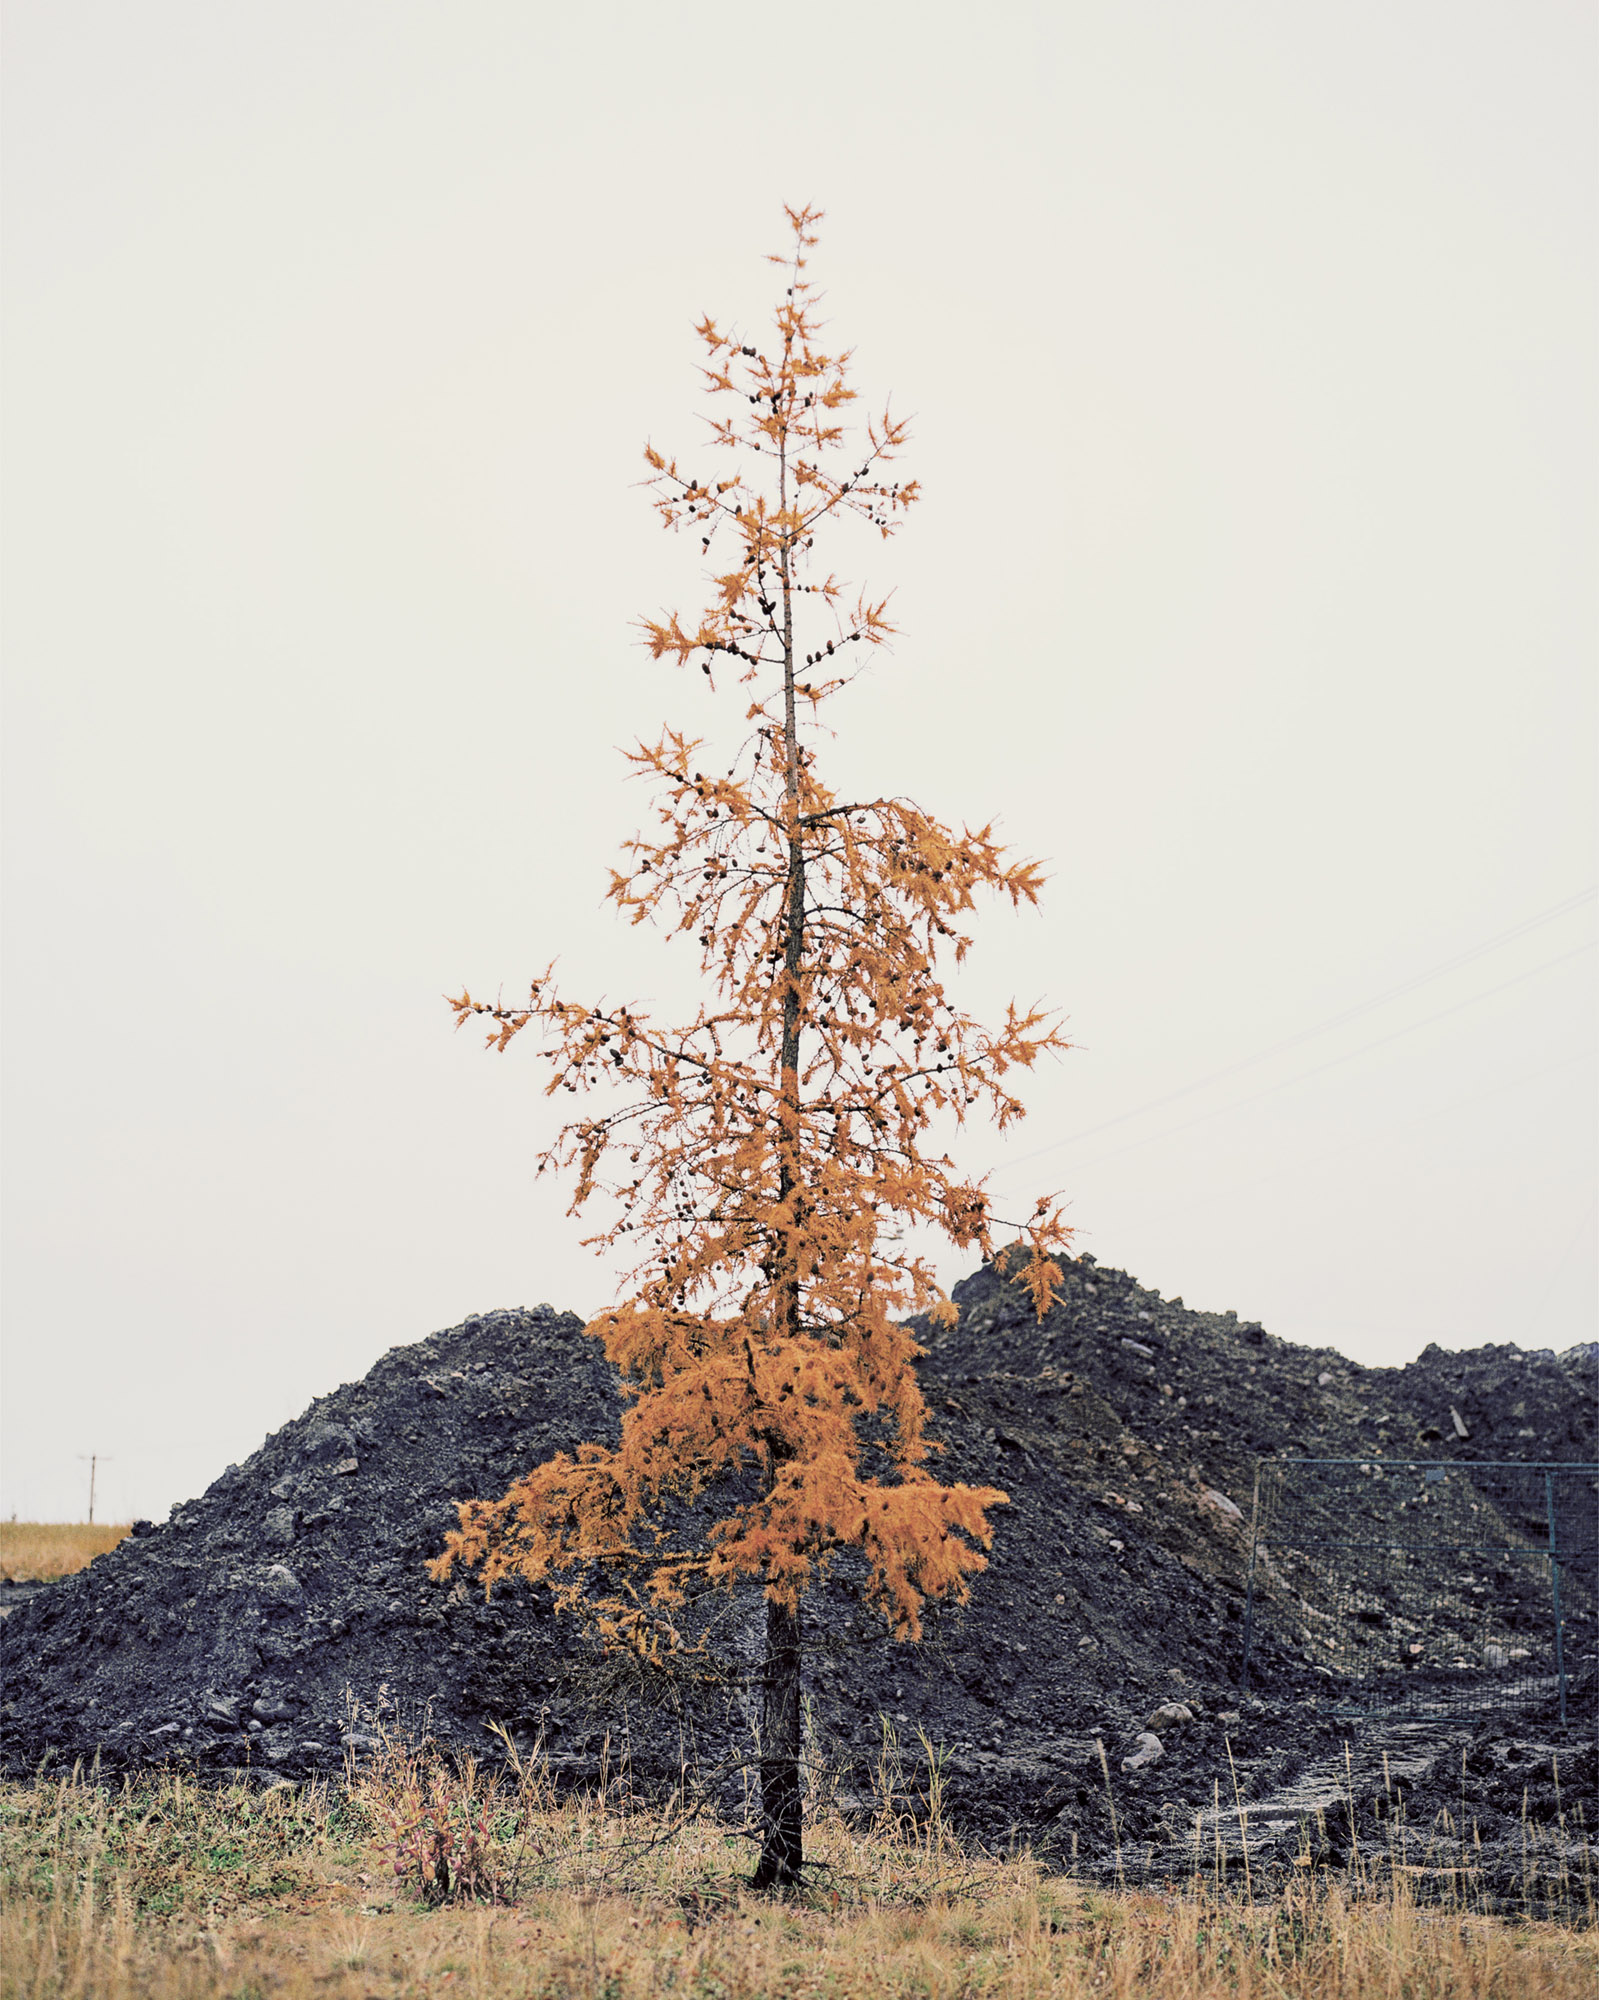 Tree Portrait Series, Fort McMurray, Canada. November 2016